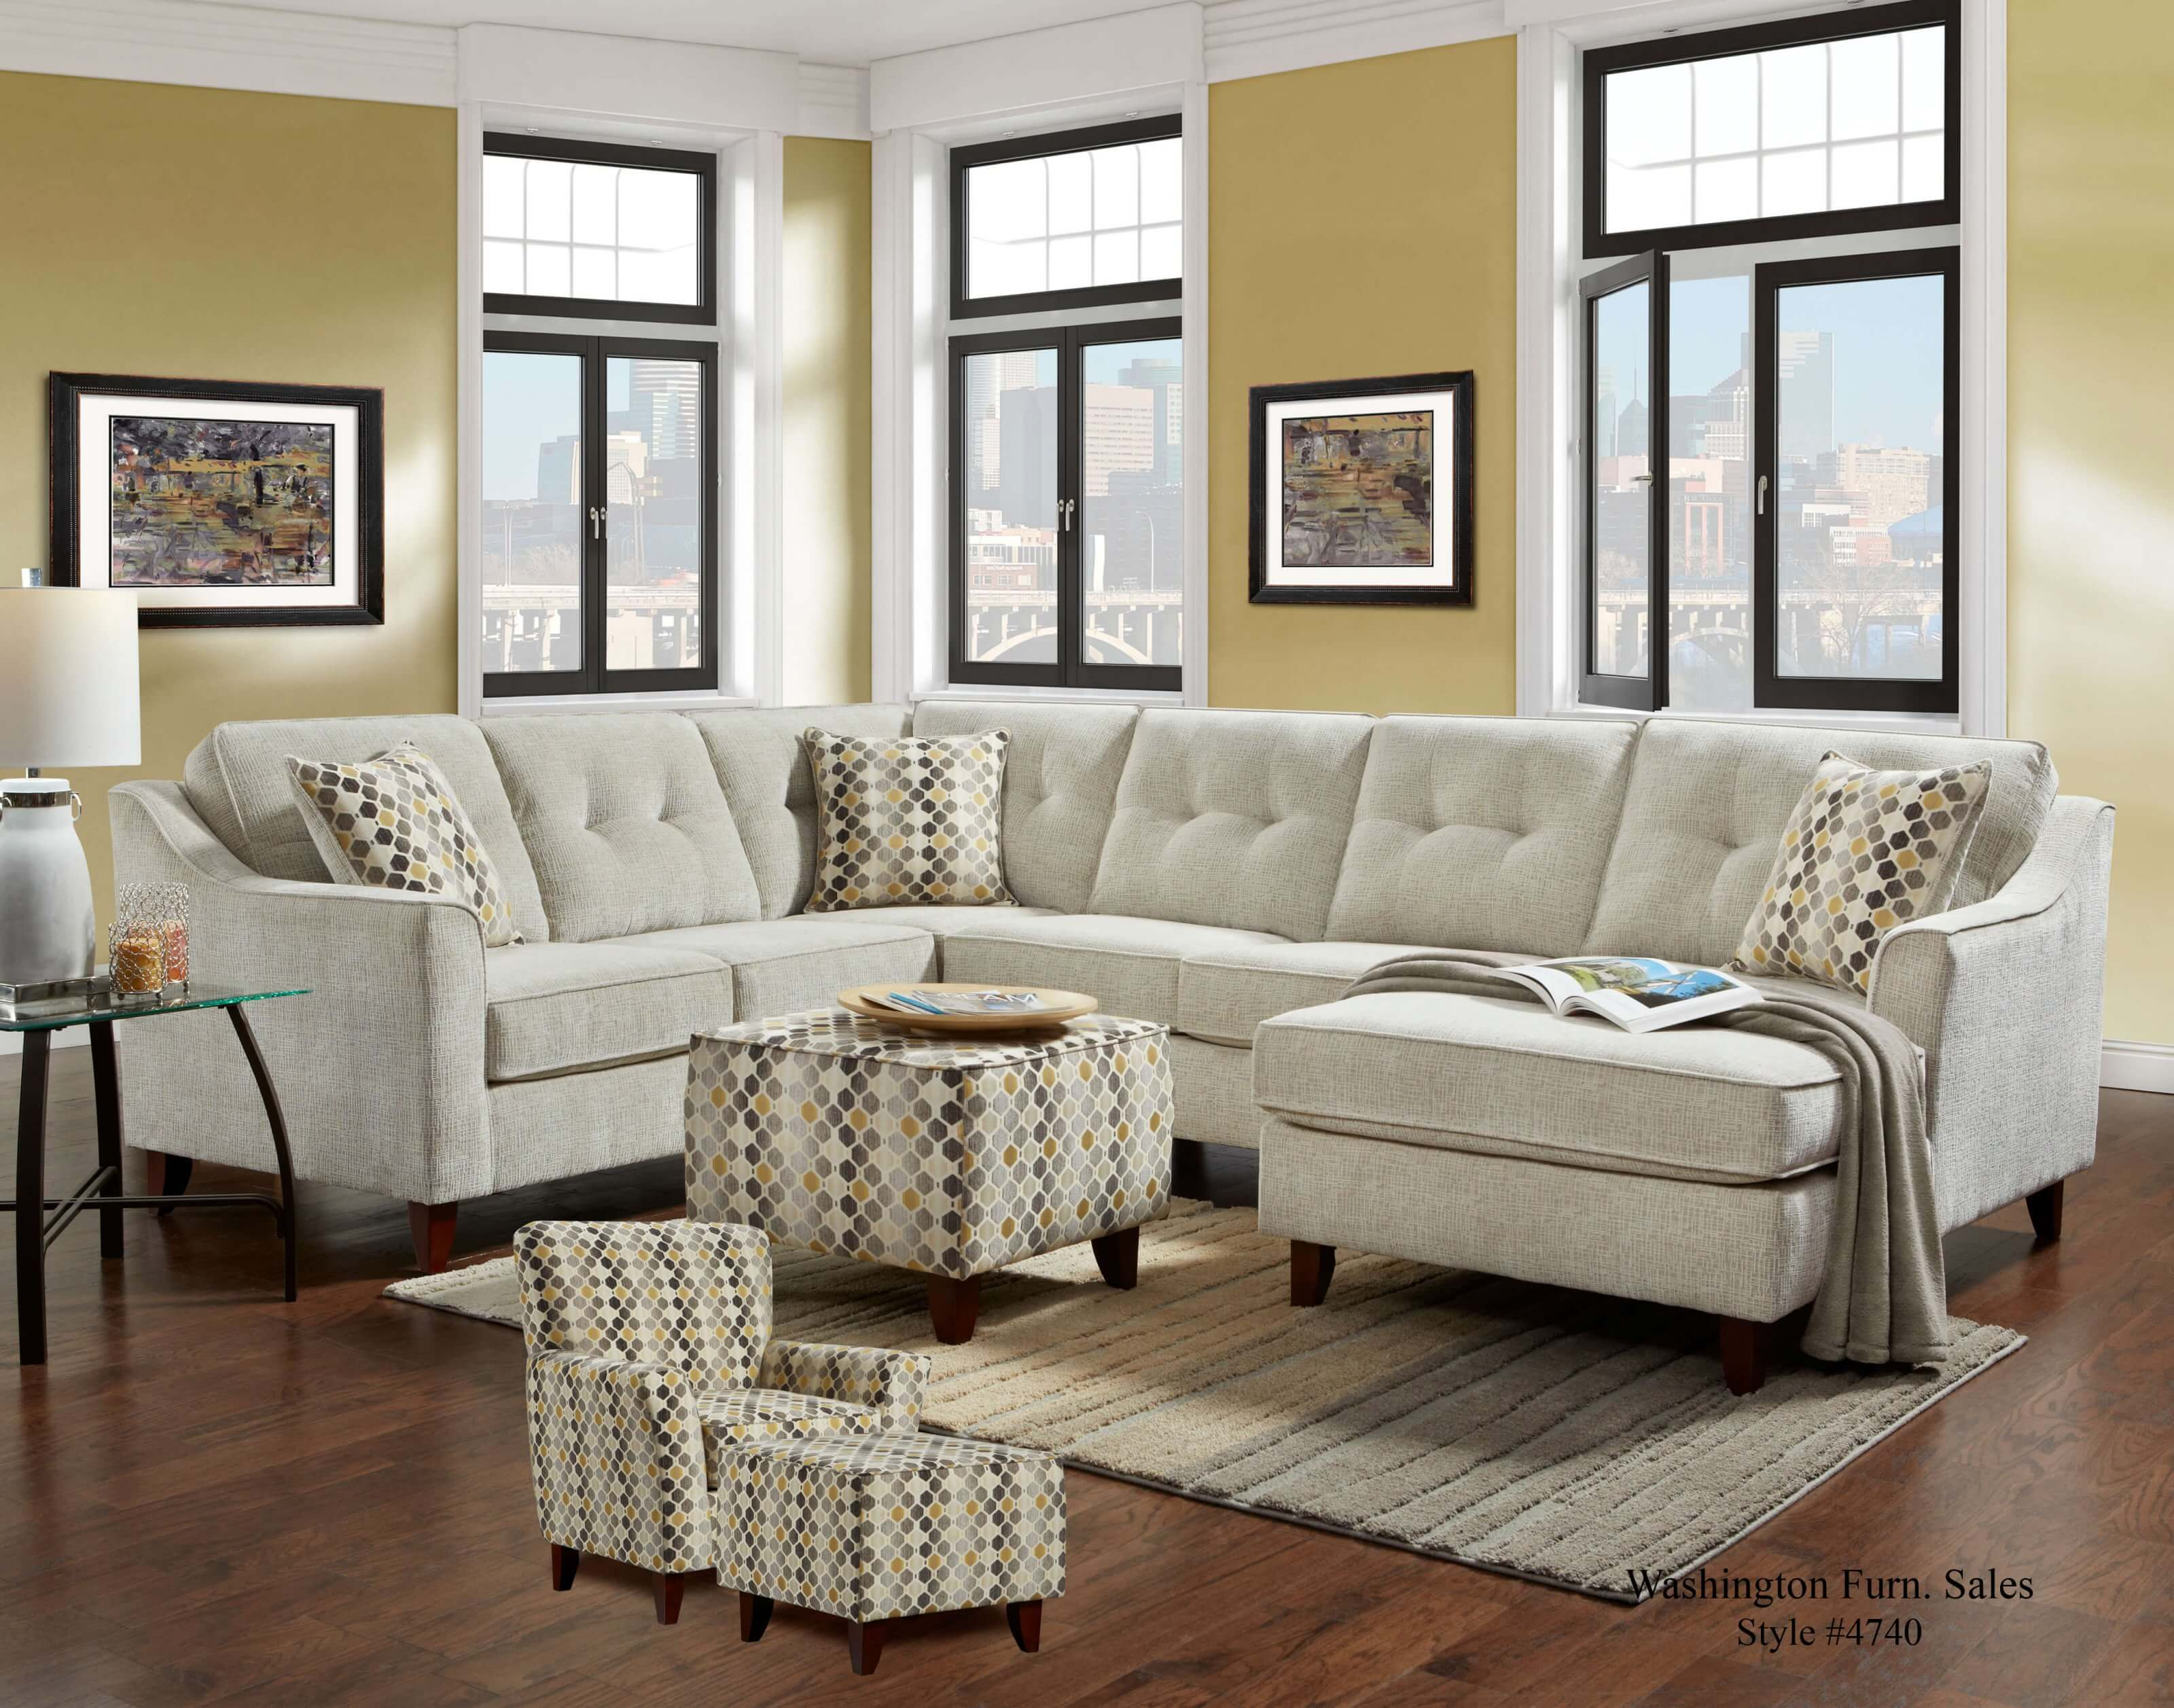 Sydney cream sectional sectional sofa sets Living room furniture sydney